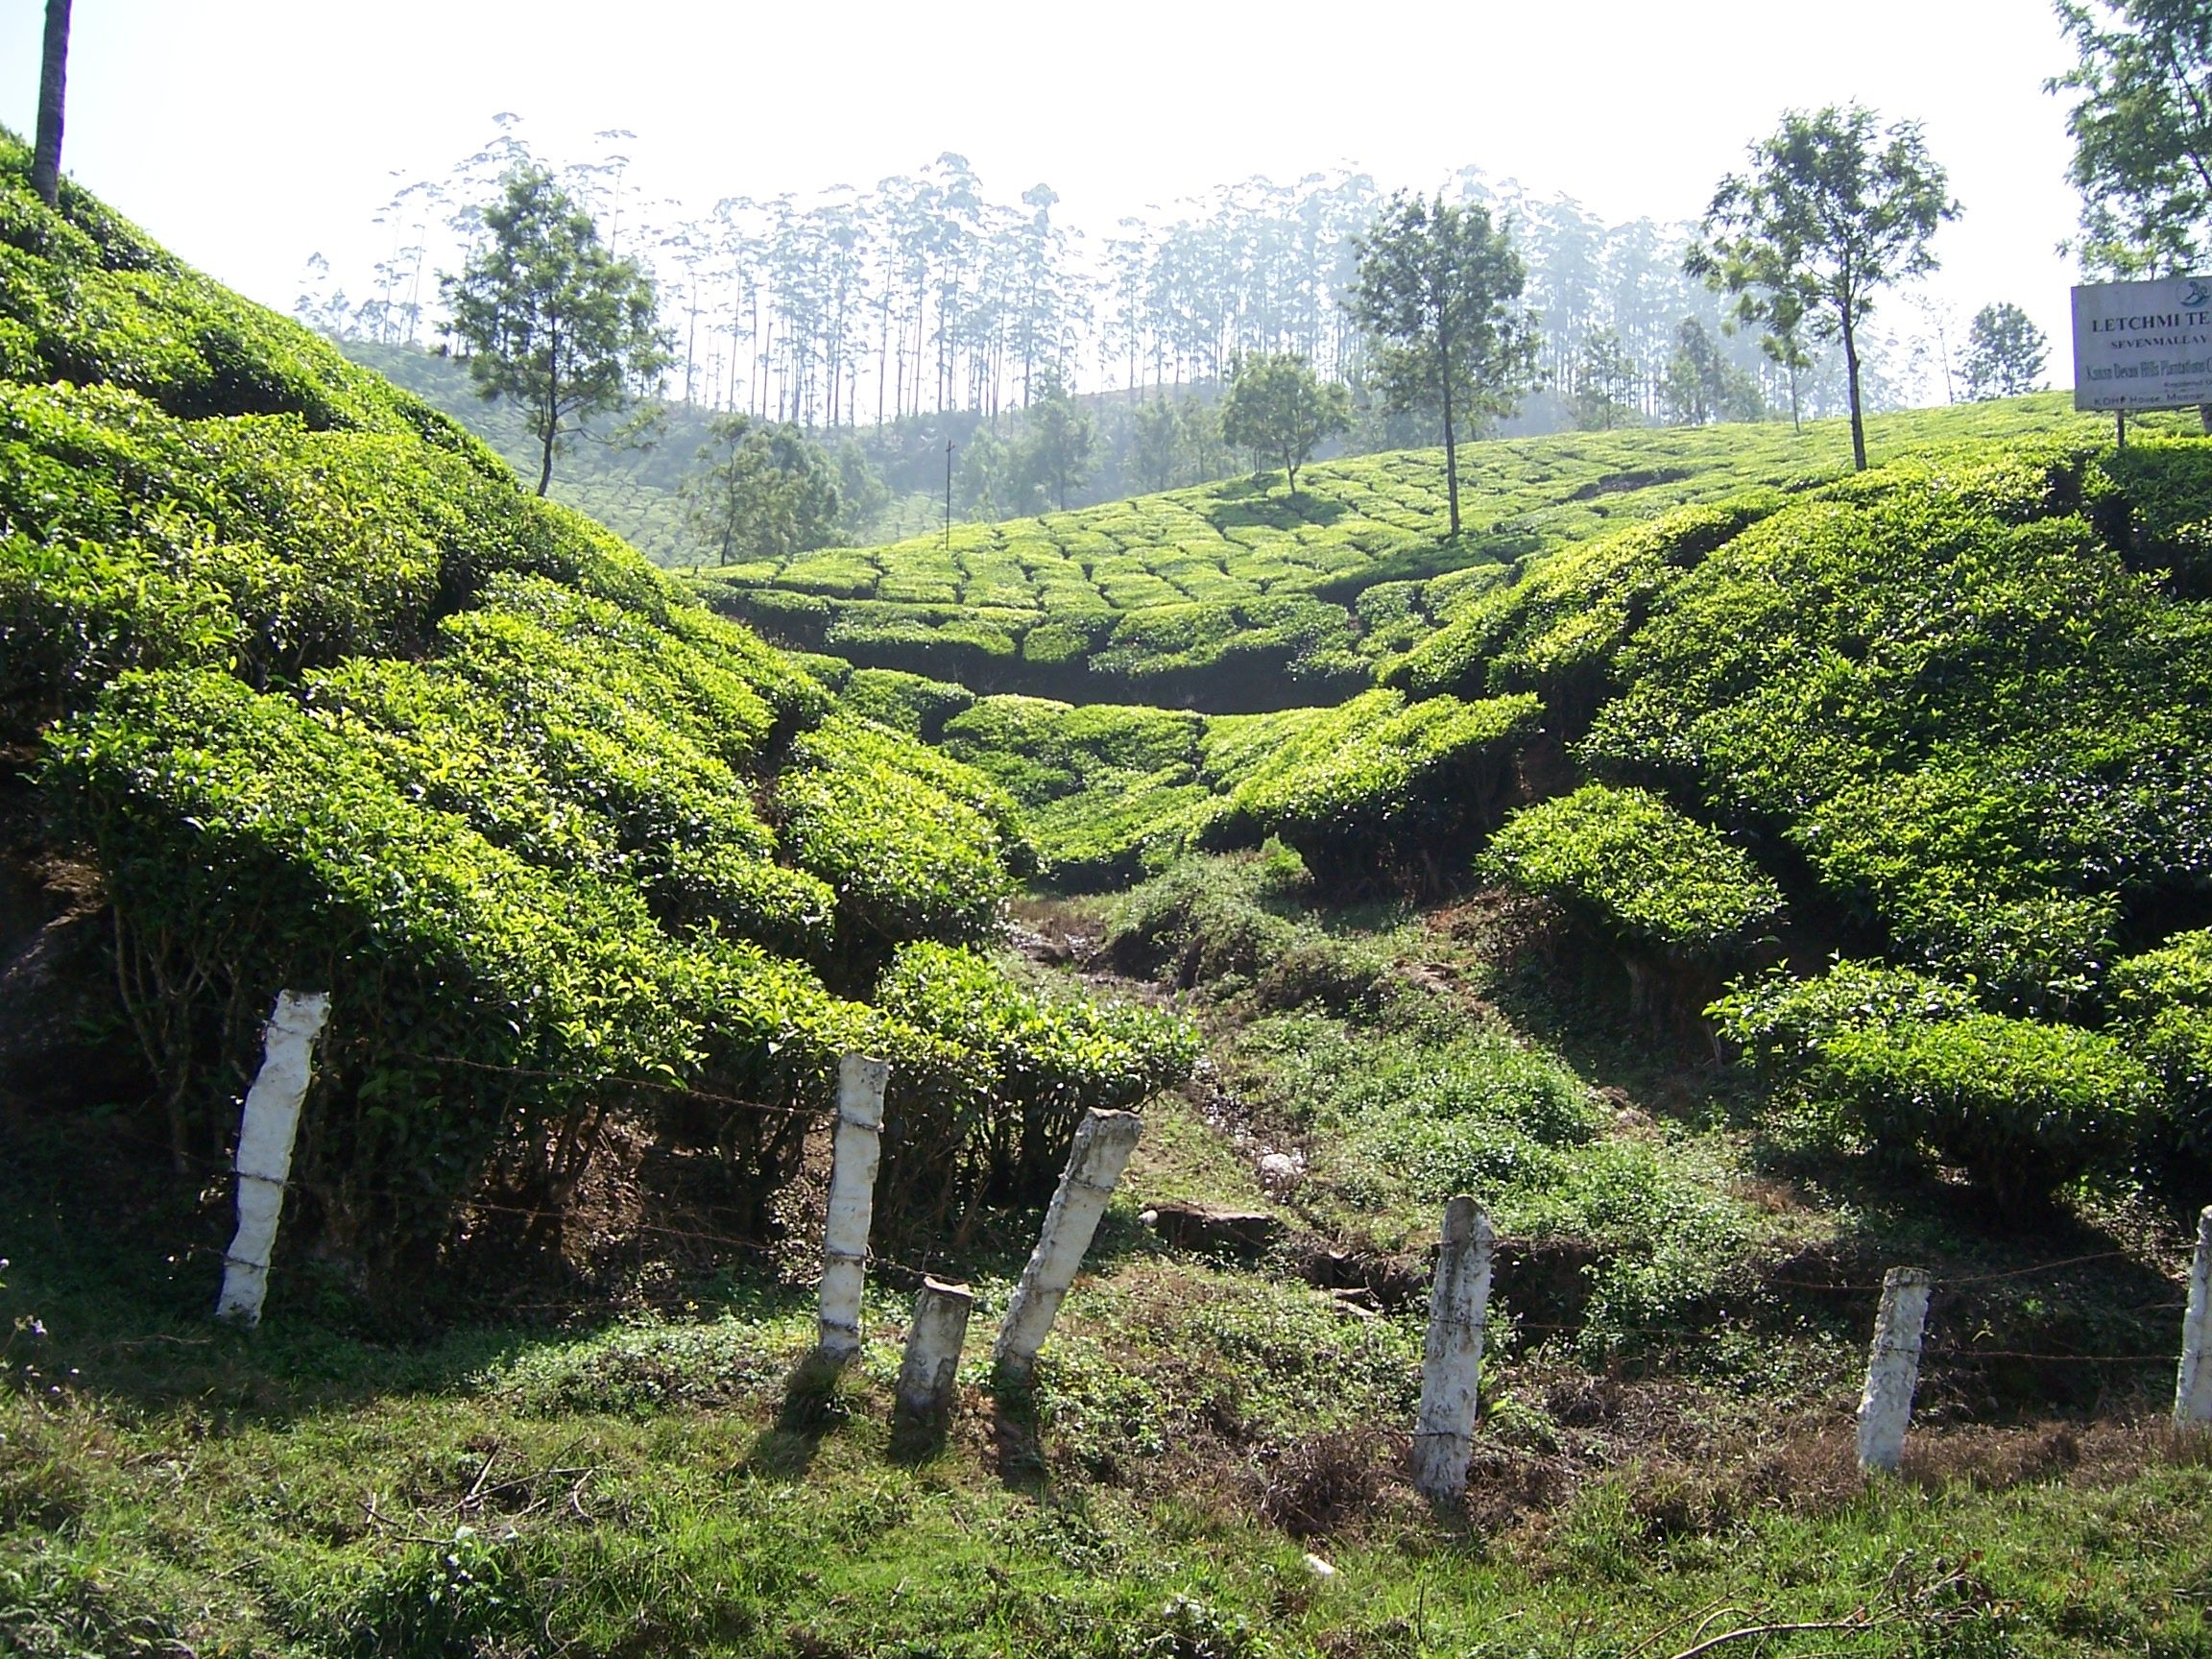 When driving in to Munnar, the humble tea bushes dominate the landscape together.